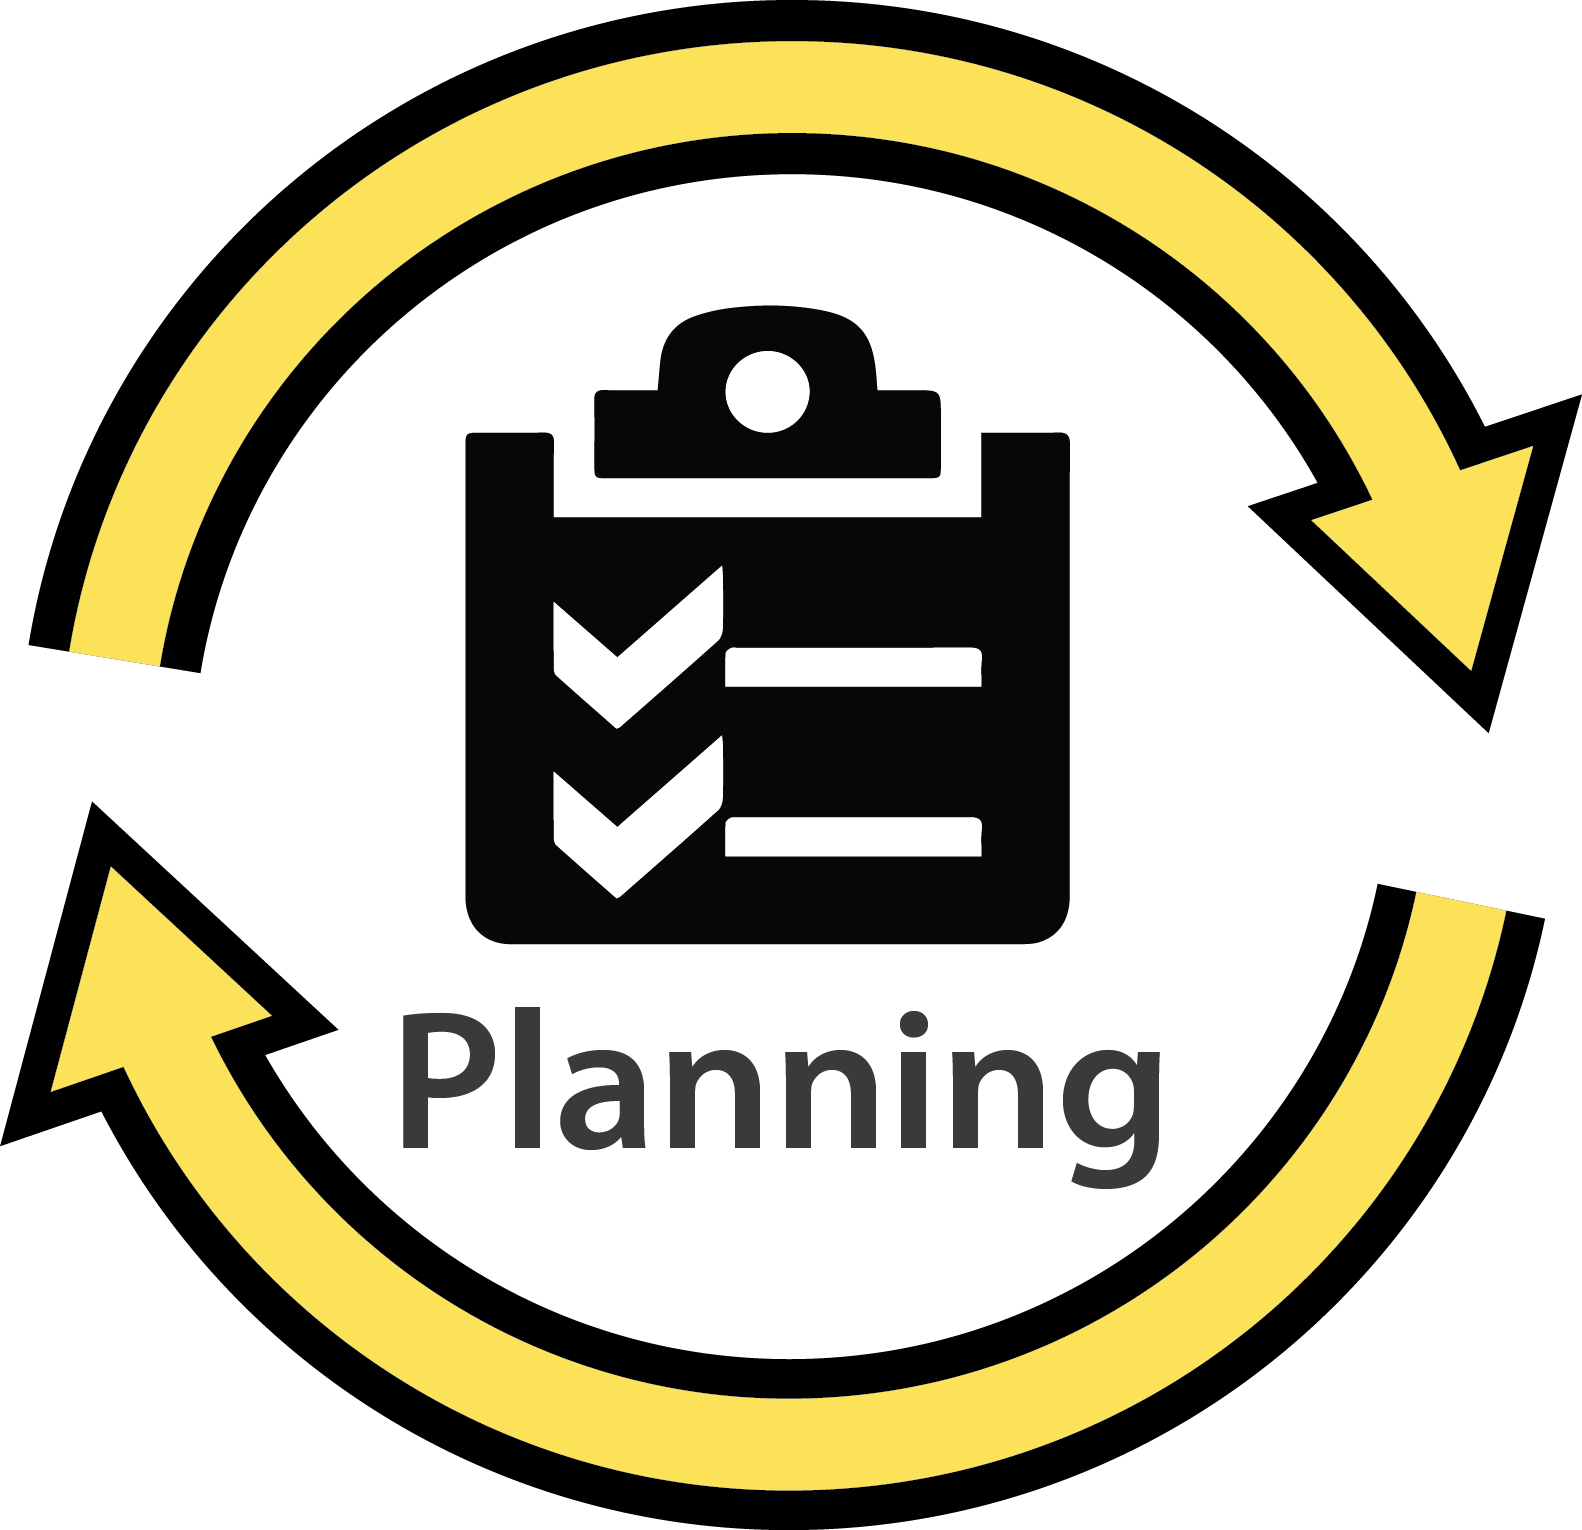 Download Planning Cycle Icon - Material Requirement Planning Icon - Full Size PNG Image - PNGkit